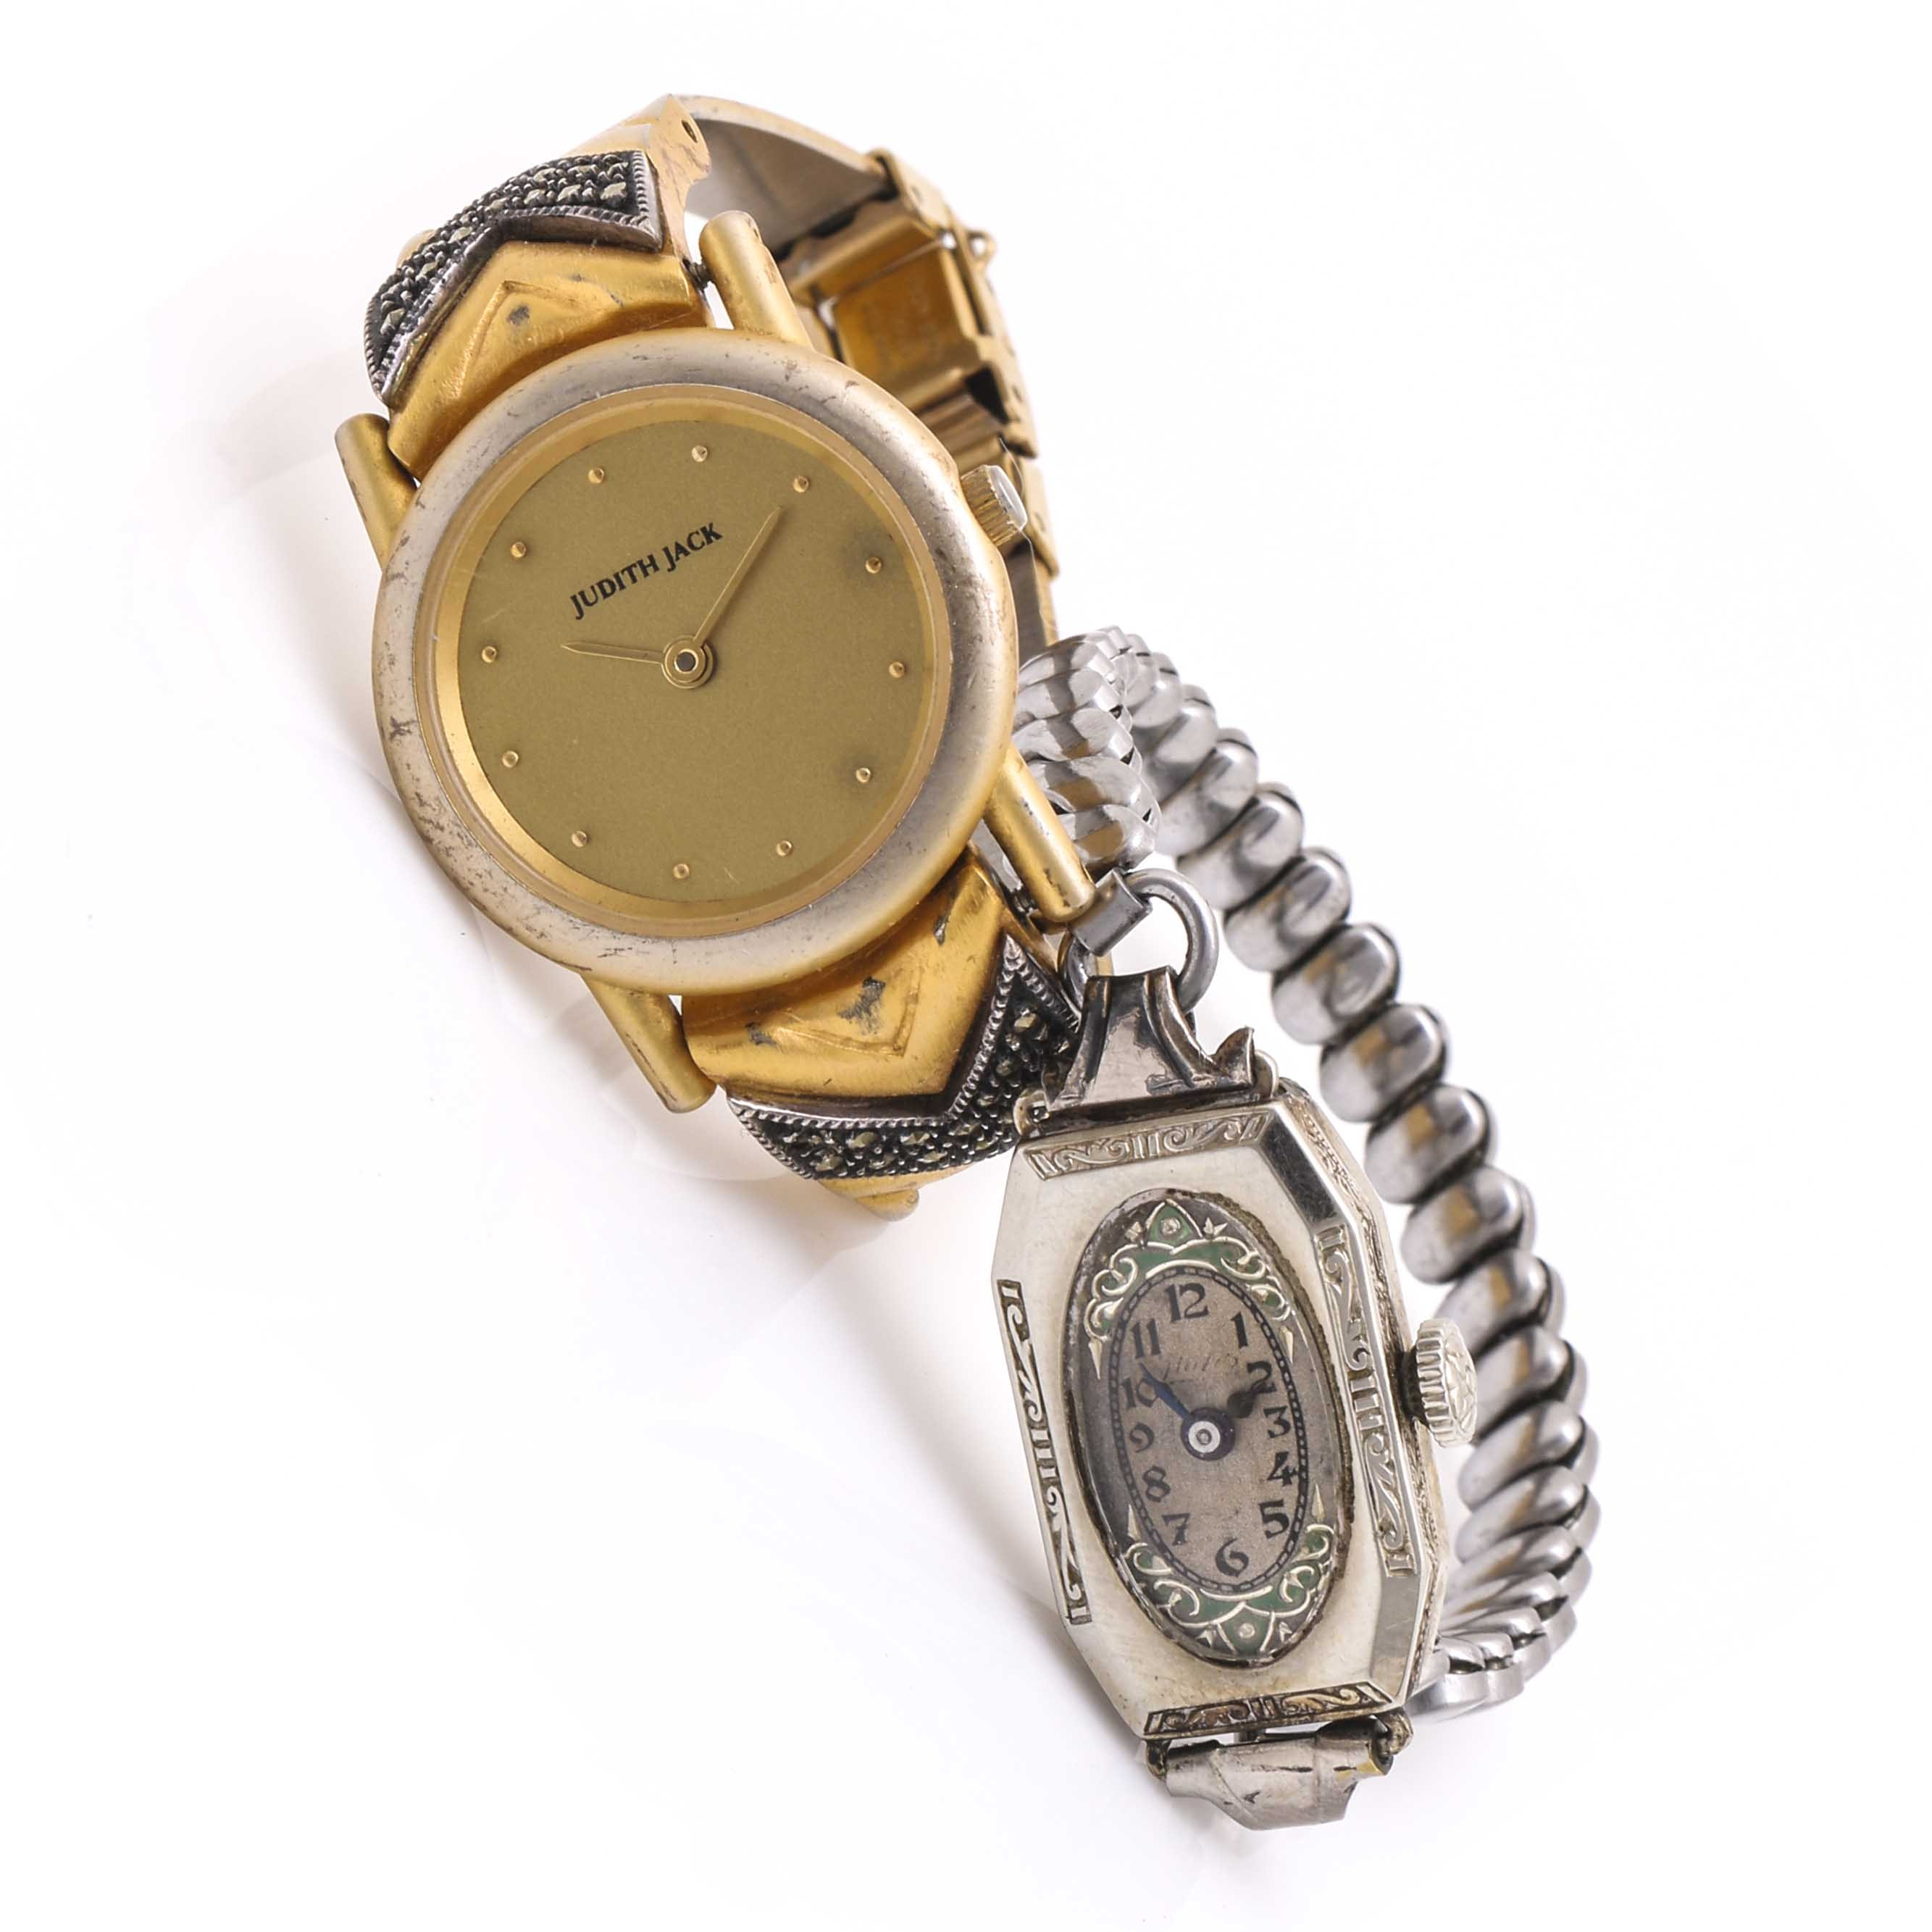 14K White Gold Filled and Gold Tone Wristwatches Including Judith Jack and Hafis